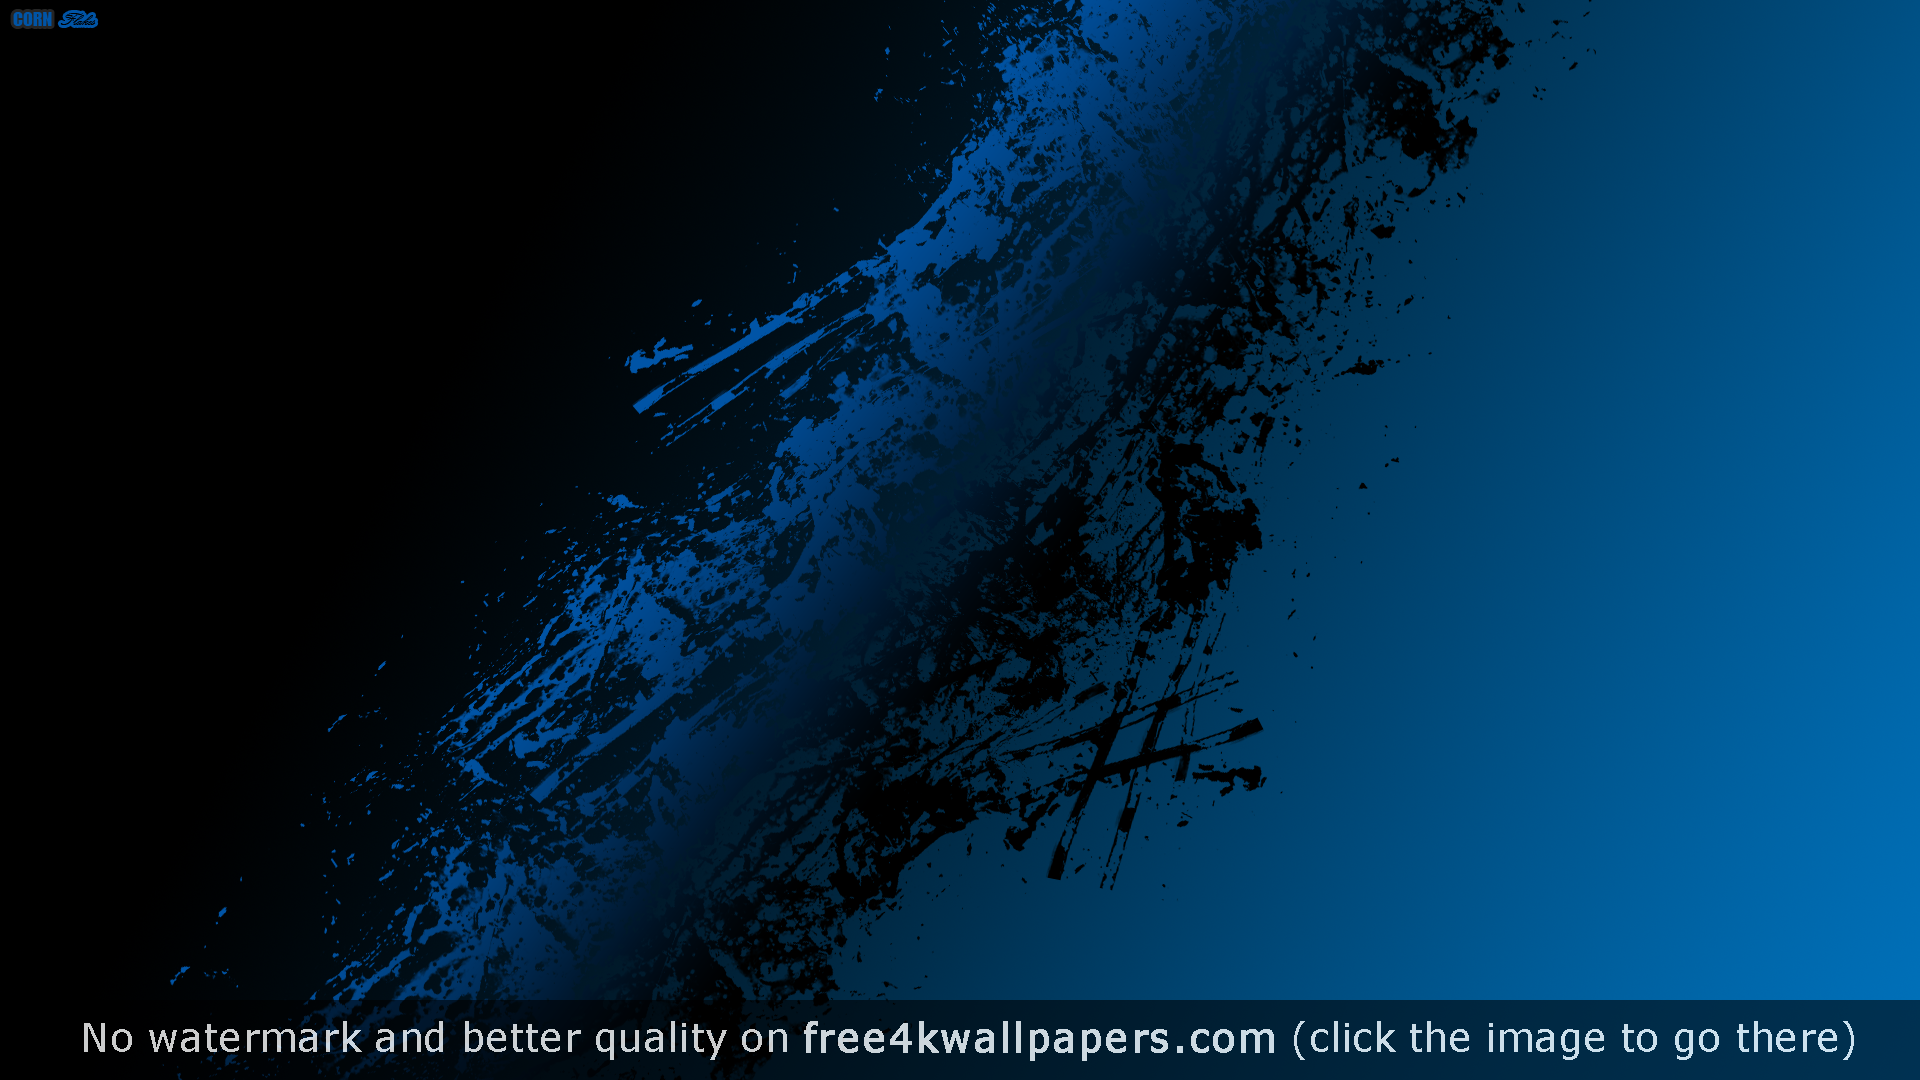 Black Blue Abstract HD wallpaper for your PC Mac or Mobile device 1920x1080